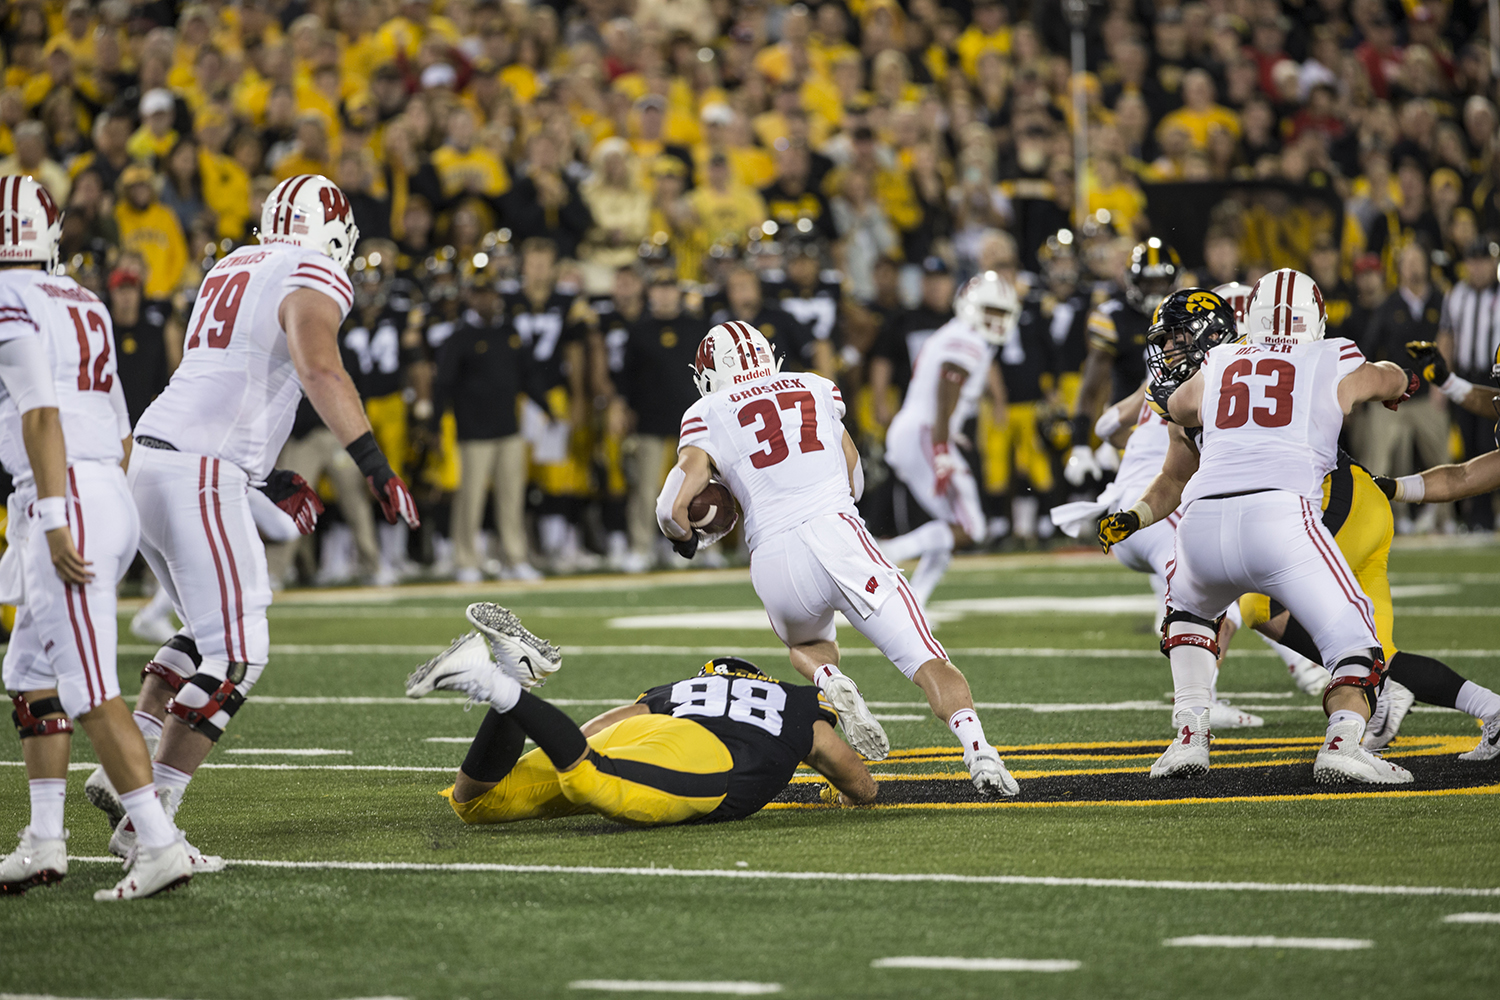 Wisconsin's Garrett Groshek avoids a tackle during a football game between Iowa and Wisconsin on Saturday, Sept. 22, 2018. The Badgers defeated the Hawkeyes, 28-17.